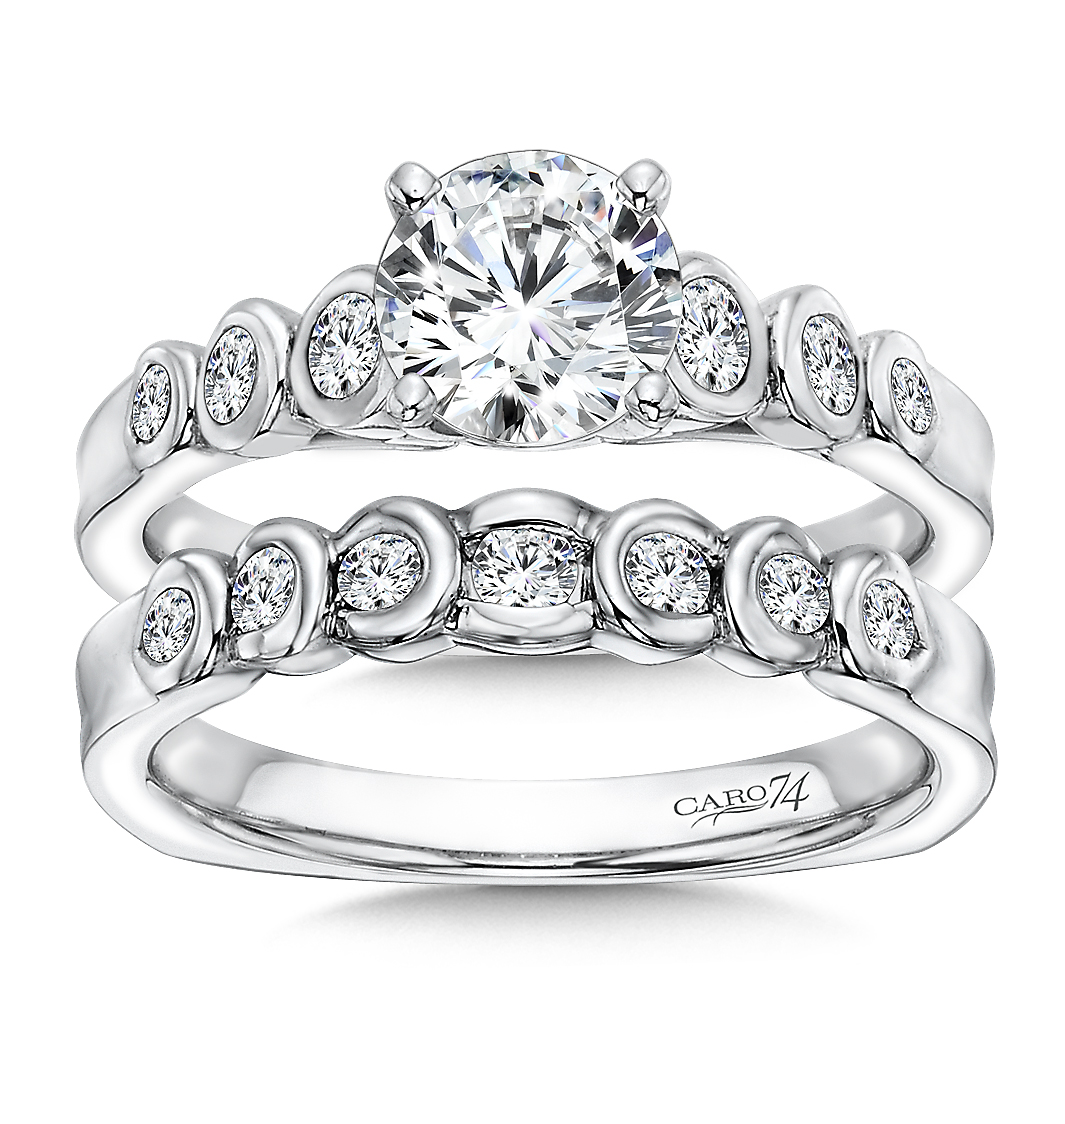 Wholesale Diamonds Dallas - Custom Exlcusive Engagement Rings Dallas